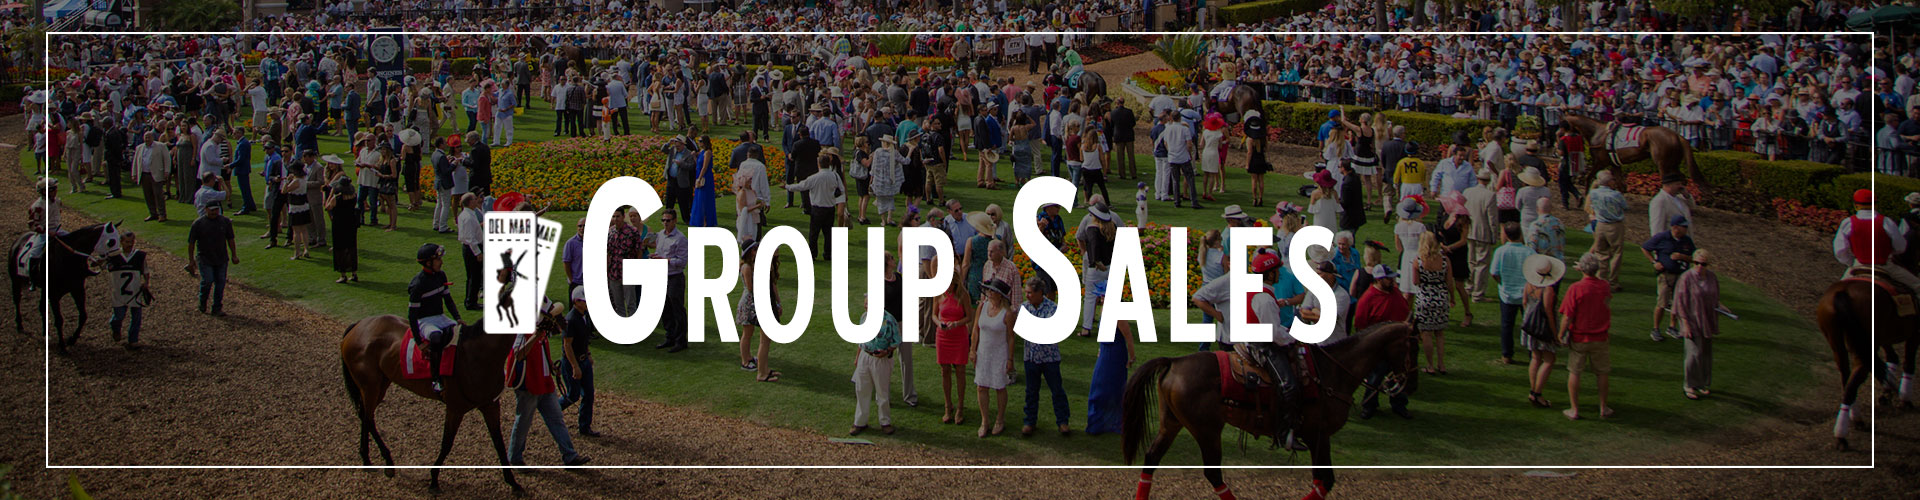 Group Sales Information